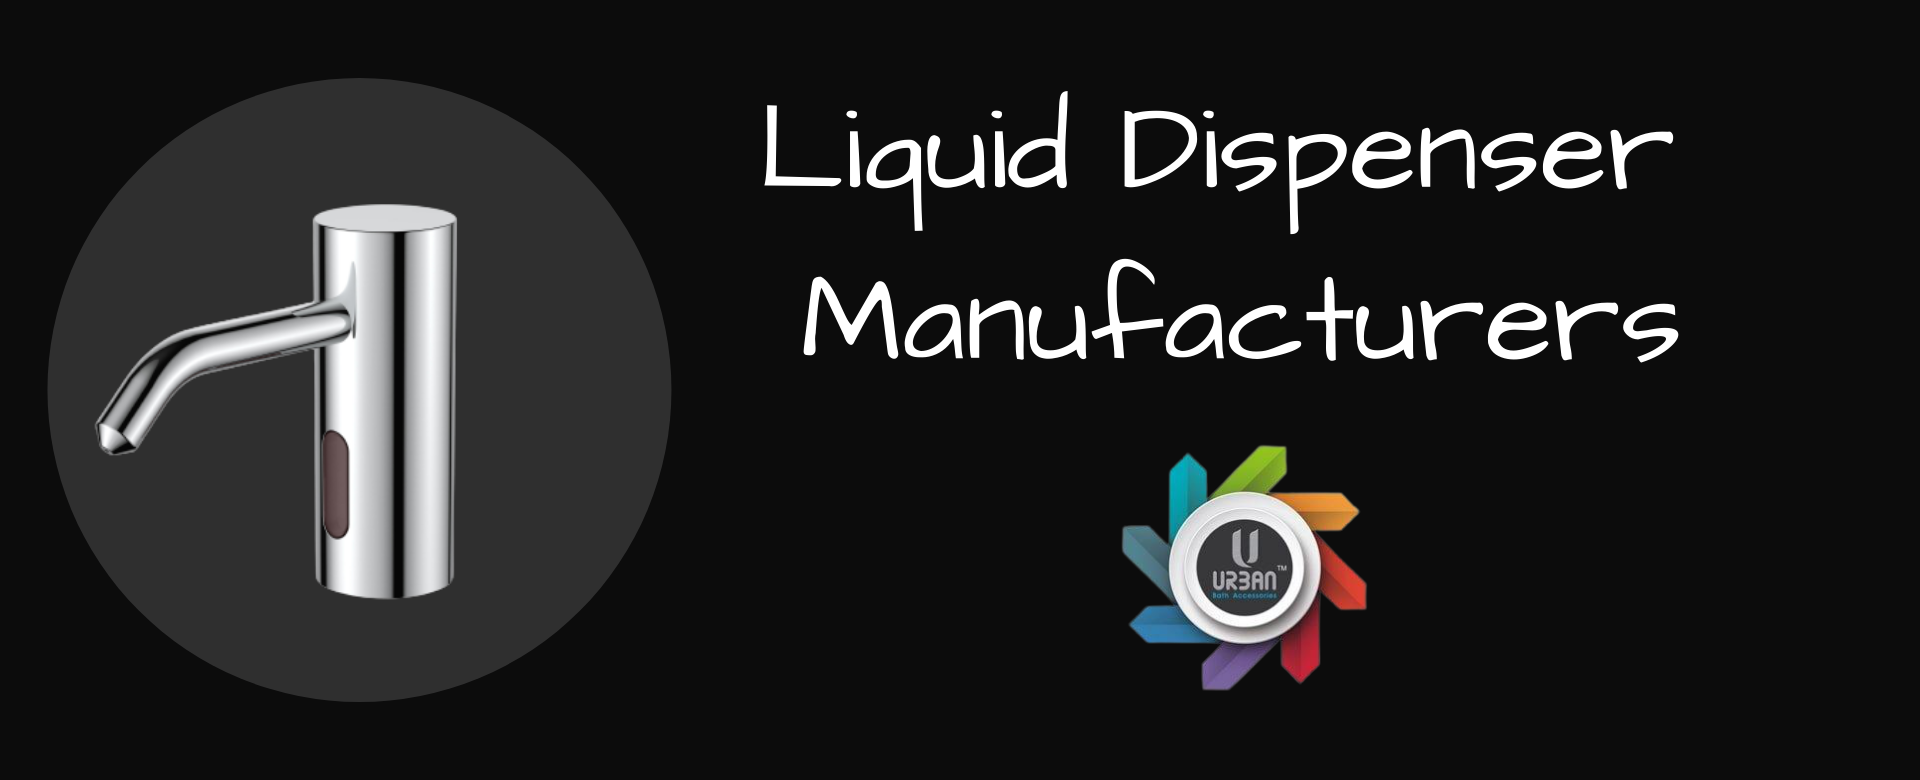 Liquid Dispenser Manufacturers Try To Make Your Bathroom Elegant With Soap Dispensers